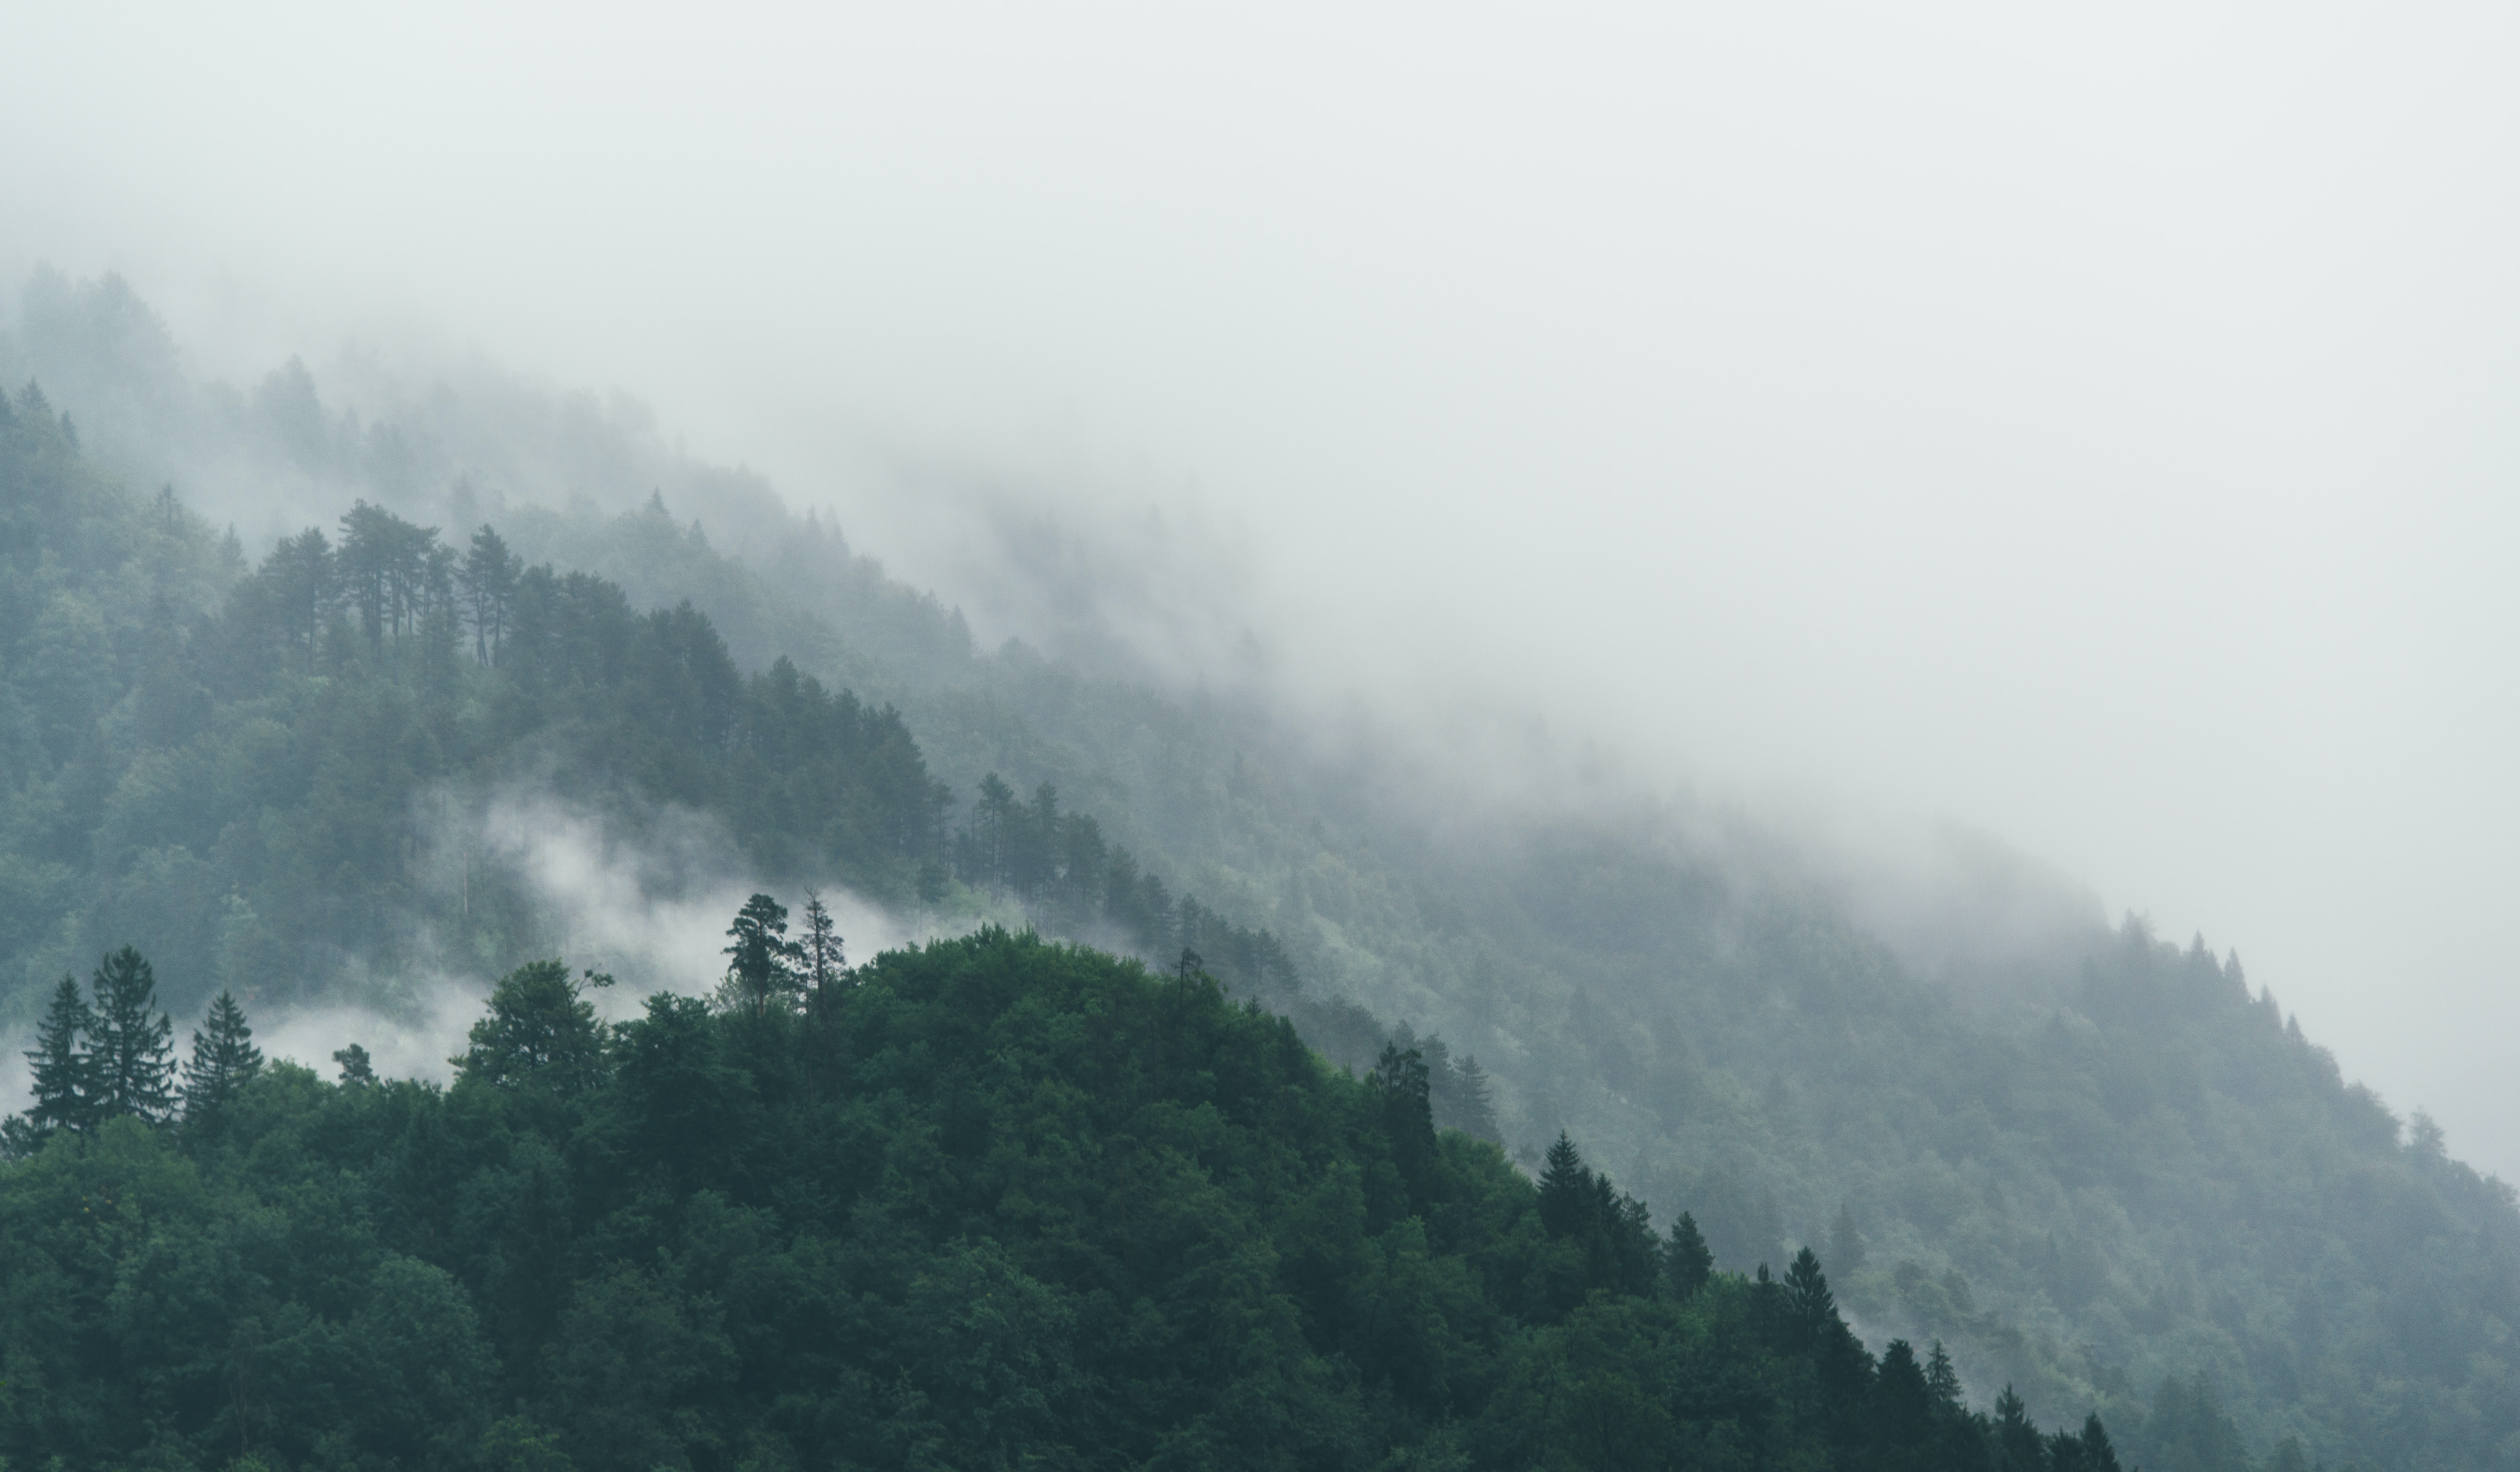 Fog rolling down a forested slope in Jesenice